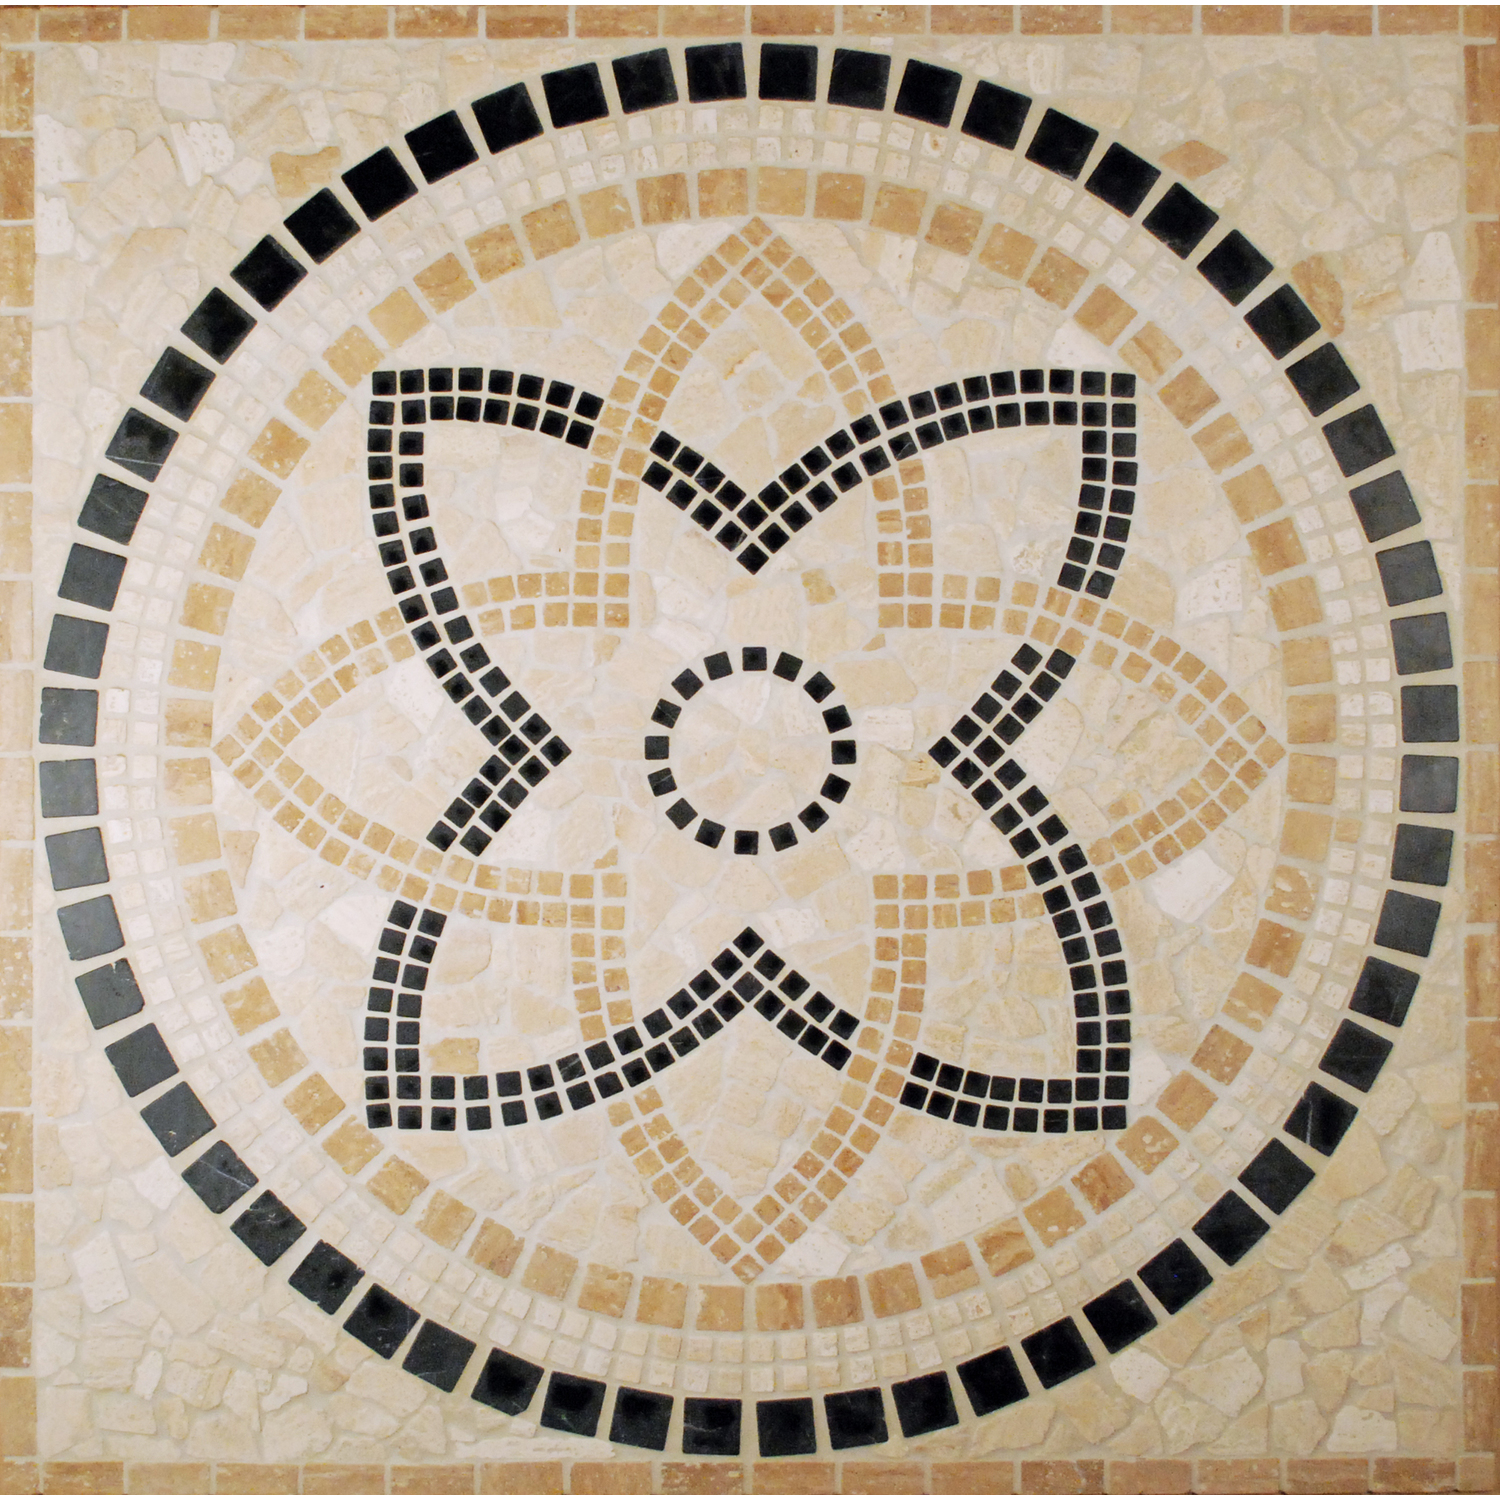 Homethangs has introduced a guide to diy floor medallions tesoro 36x36 square tumbled medallion from appia driappmed dailygadgetfo Gallery